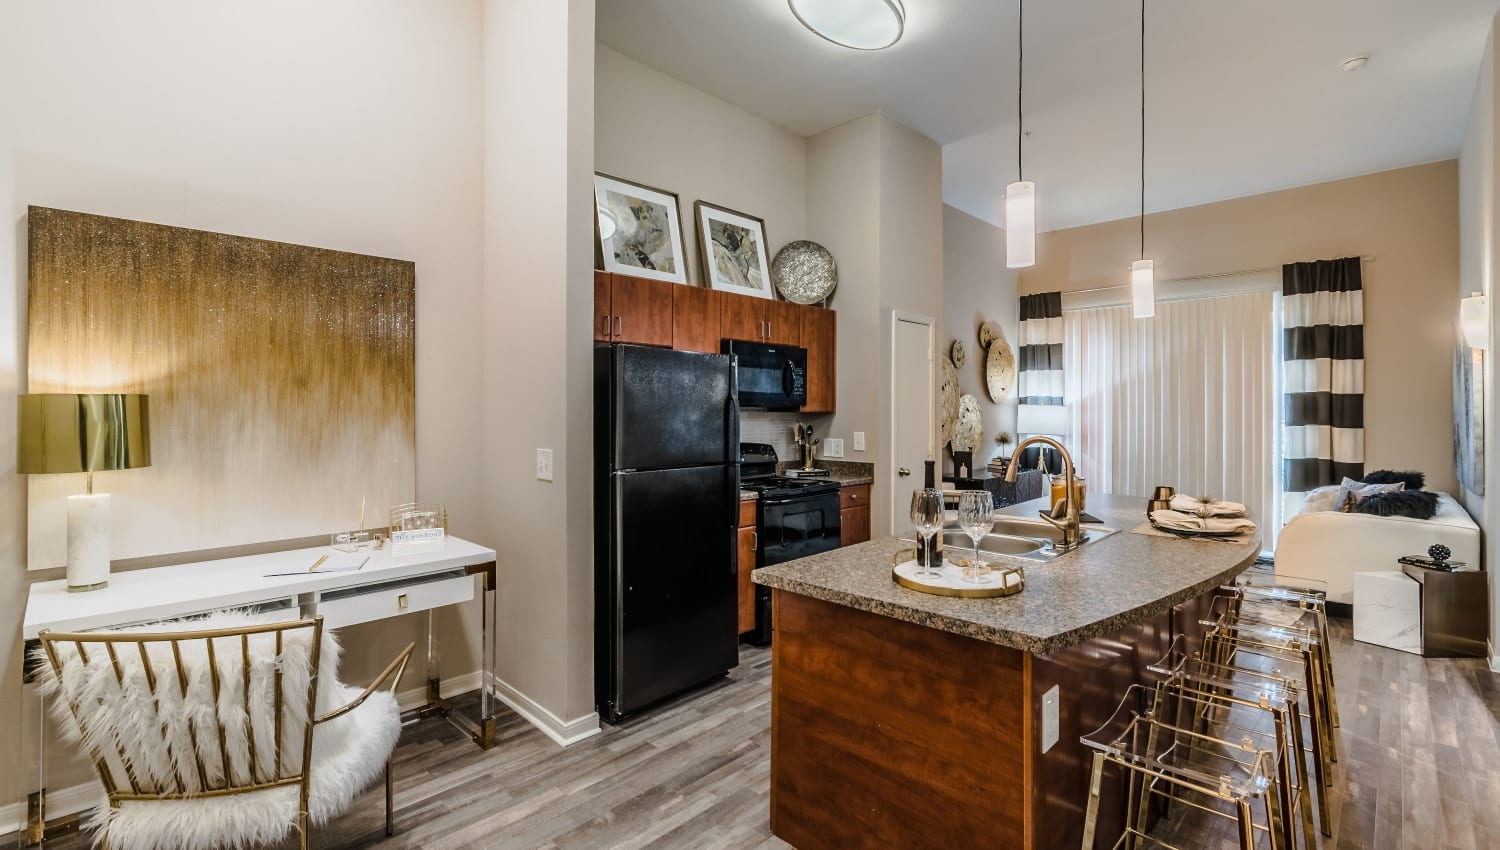 Gourmet kitchen with ample space at Olympus Boulevard in Frisco, Texas